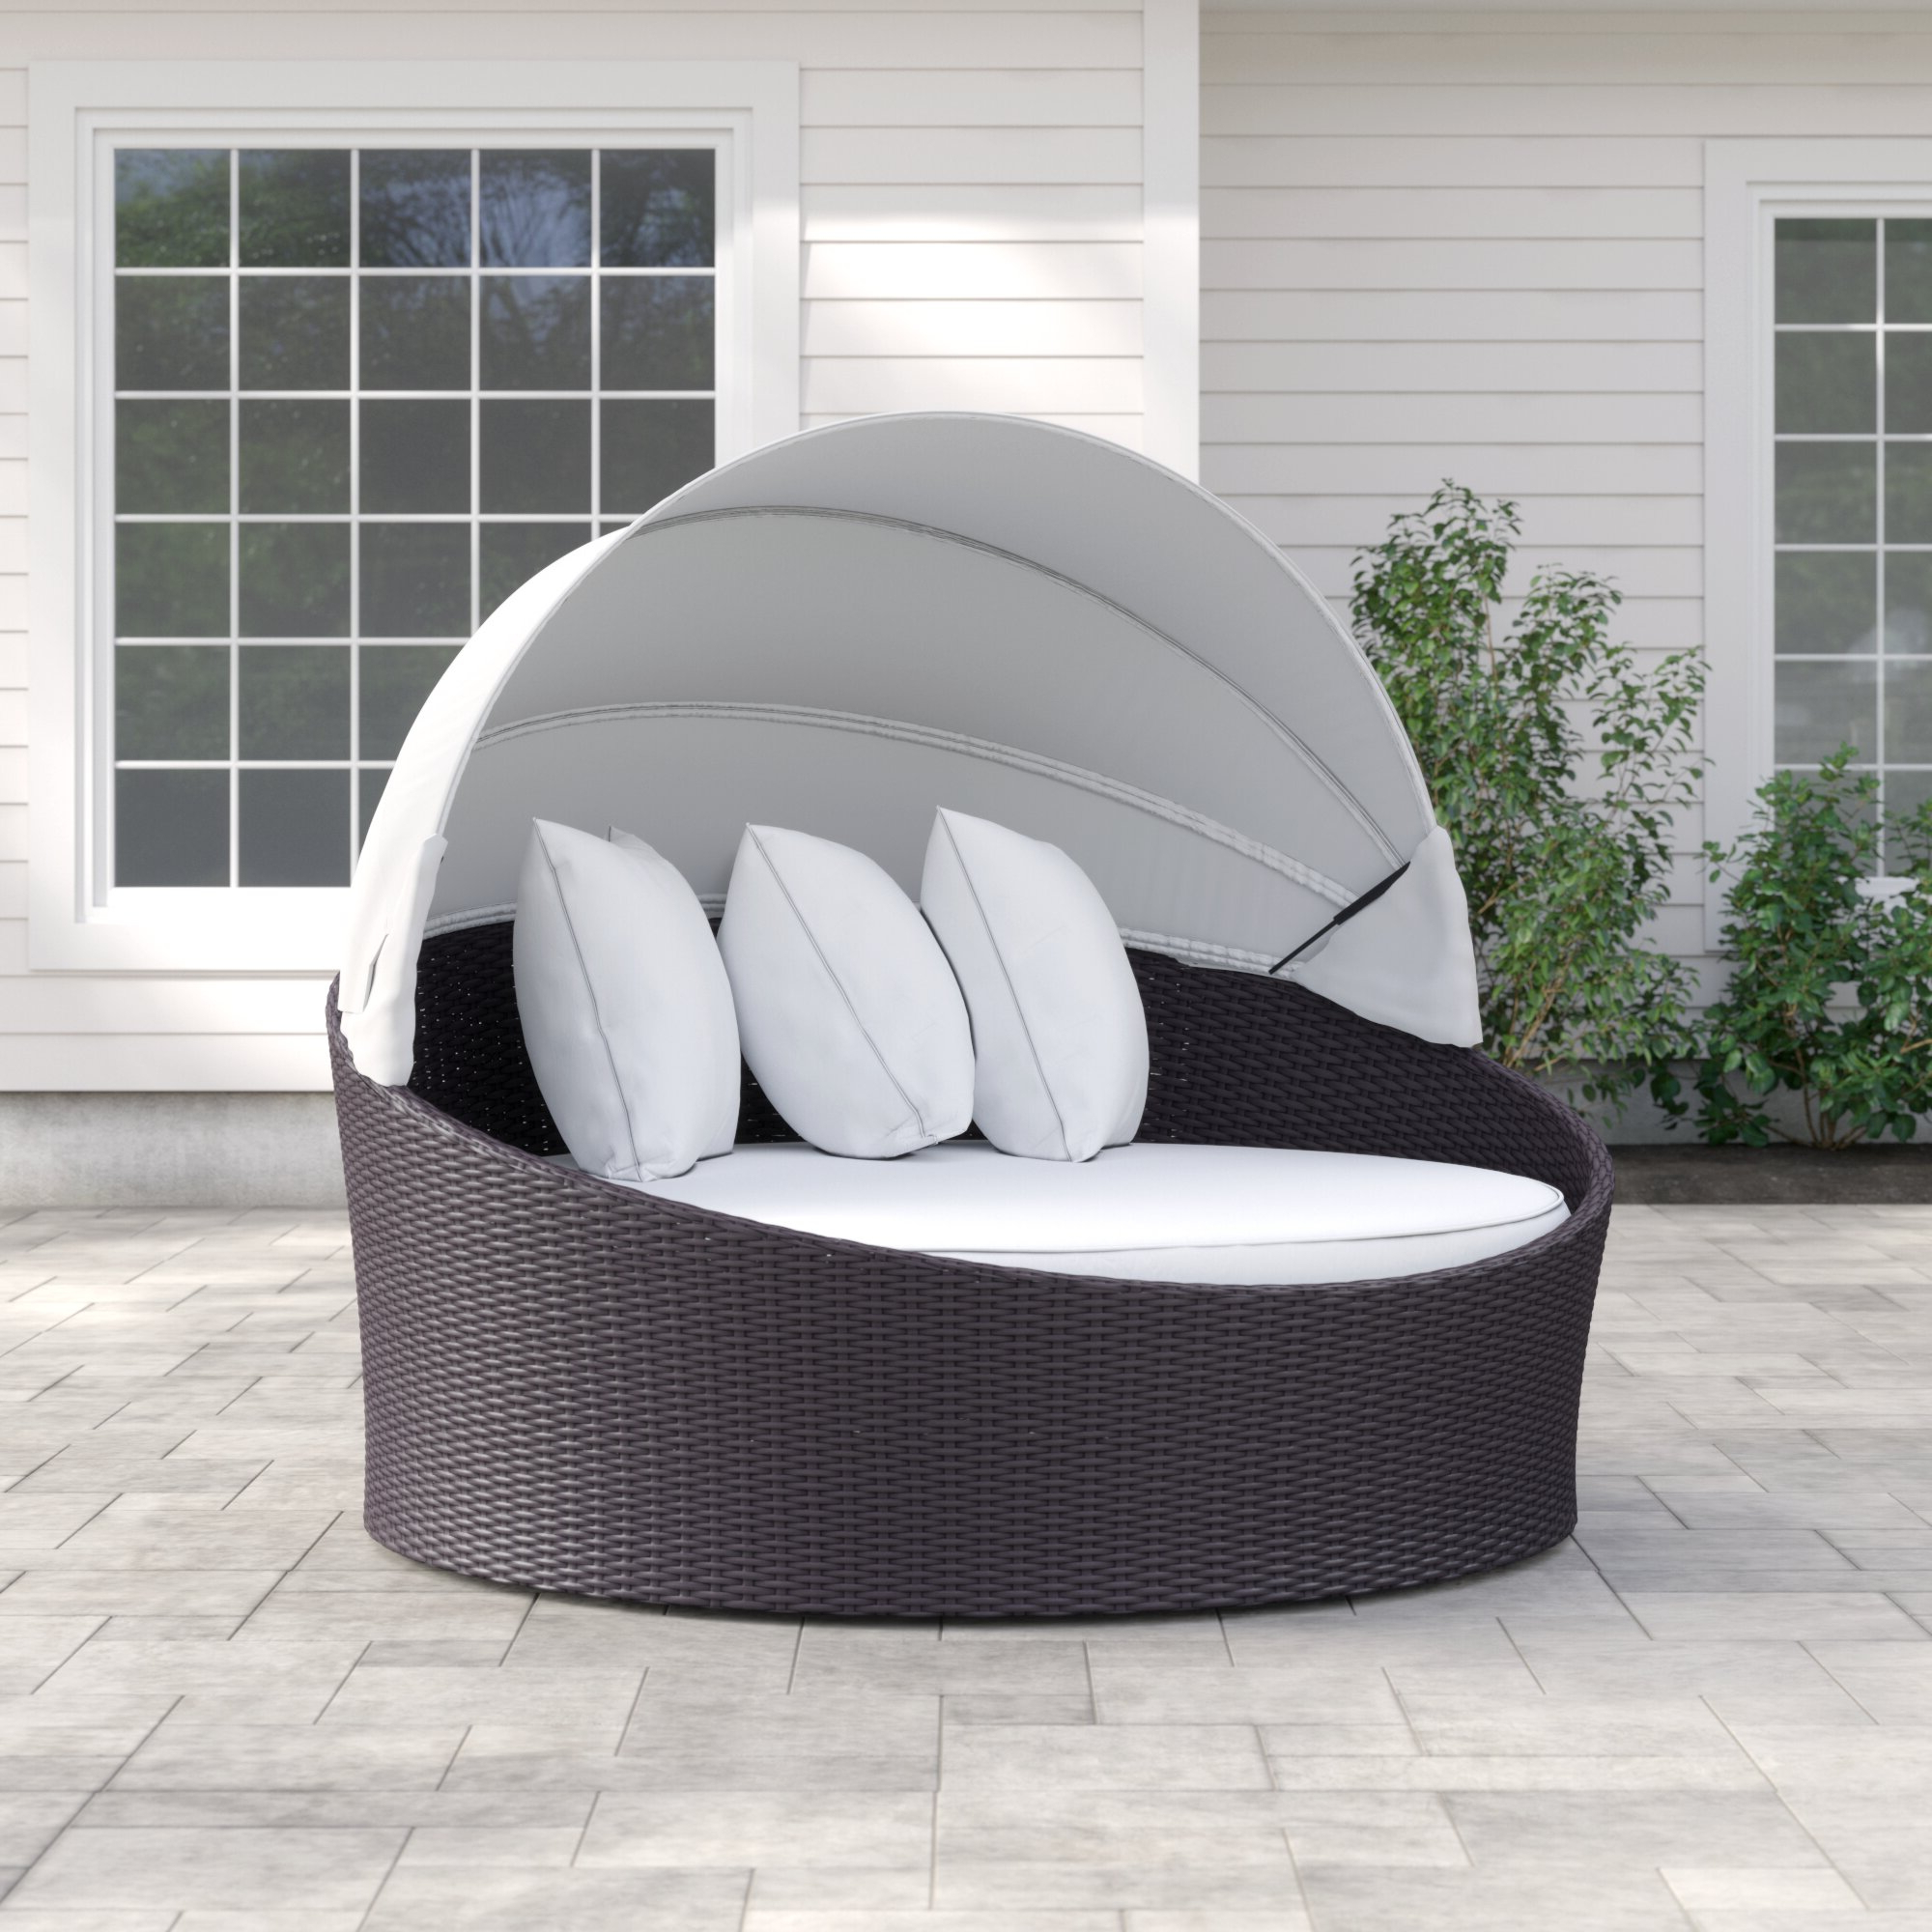 Widely Used Brentwood Patio Daybeds With Cushions Intended For Brentwood Canopy Patio Daybed With Cushions (View 25 of 25)